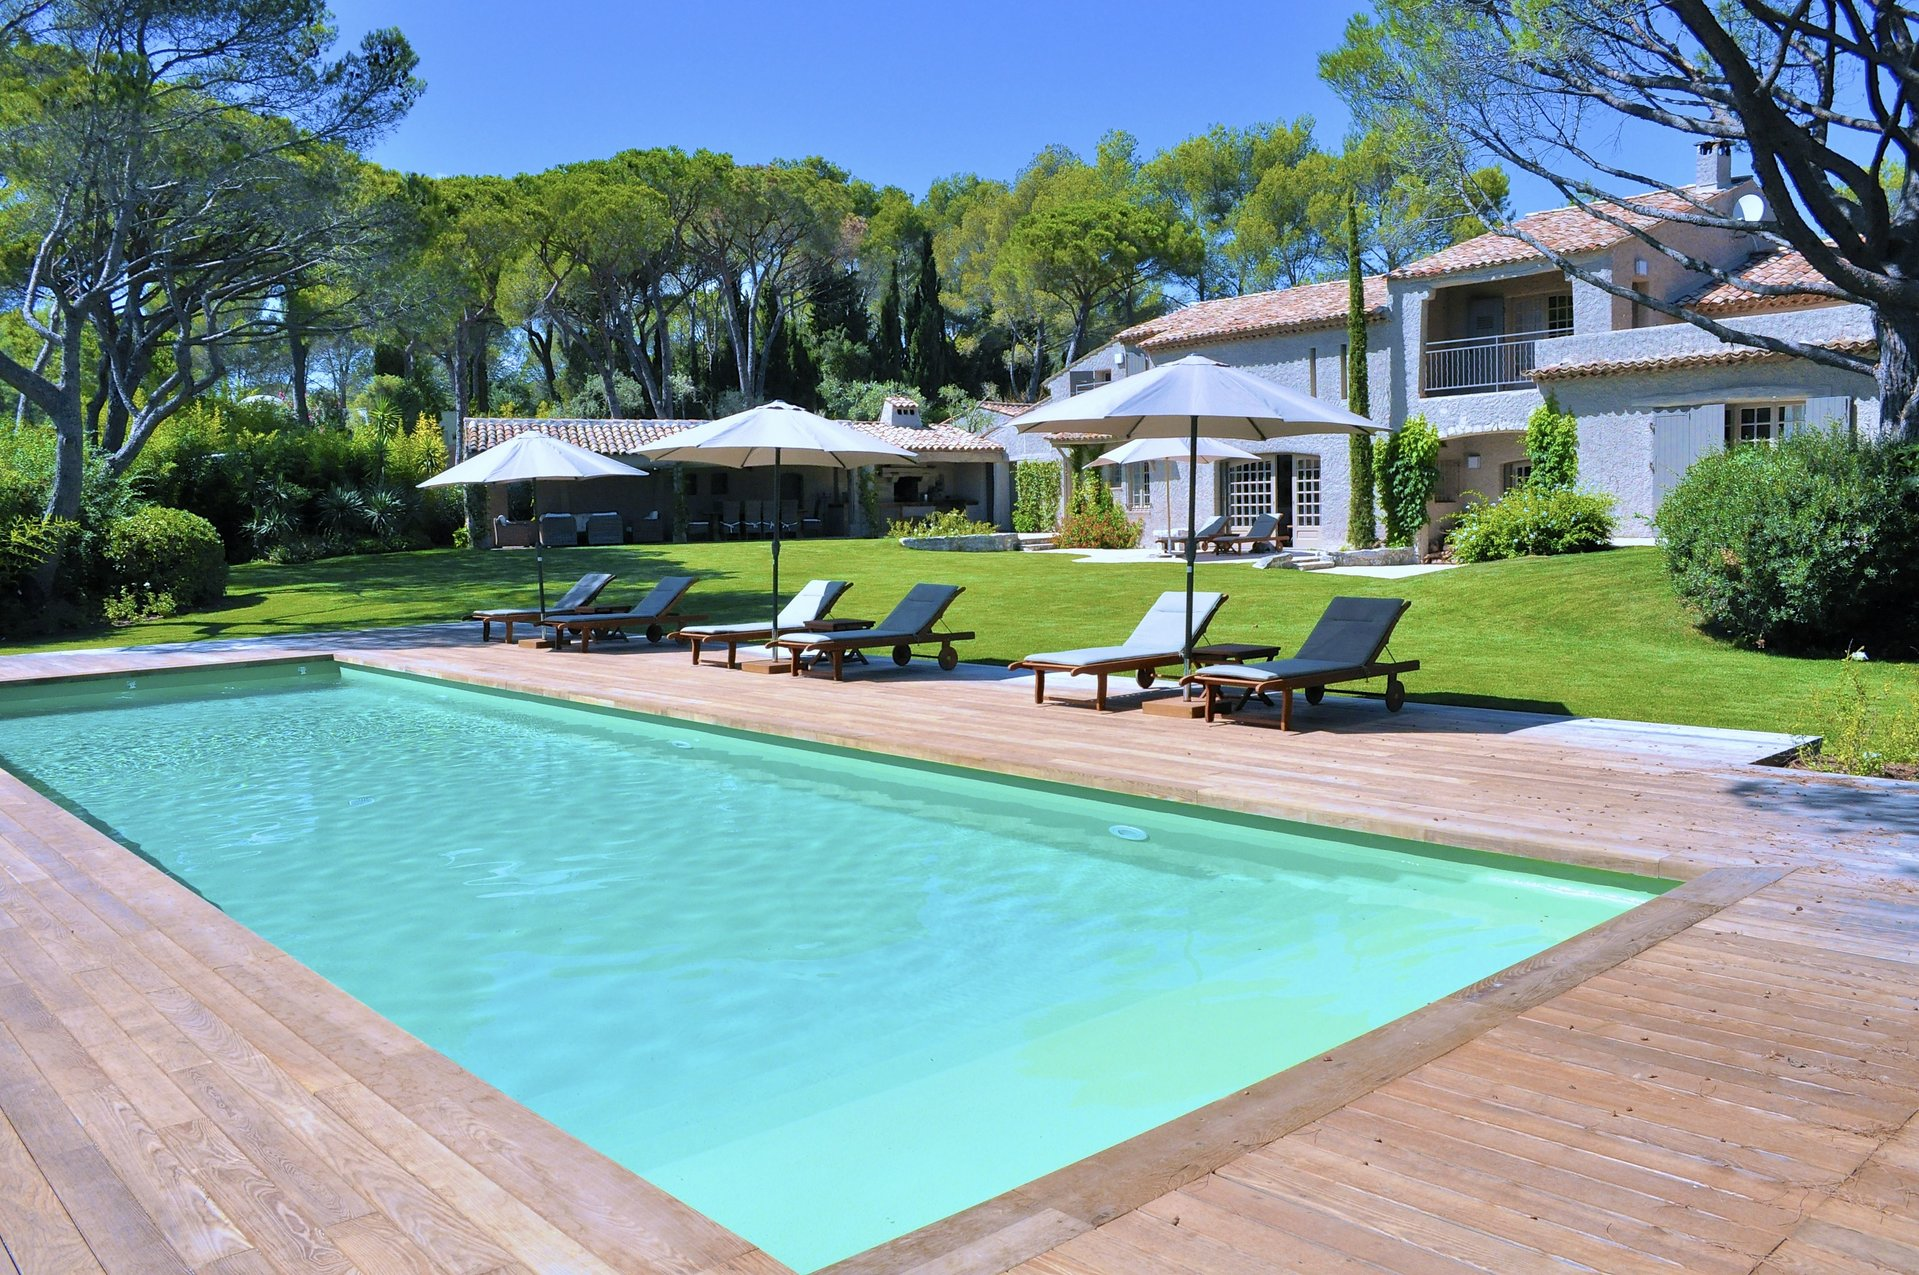 St. Raphaël - Spacious authentic villa with external buildings (+ 500m2) in the luxury Valescure